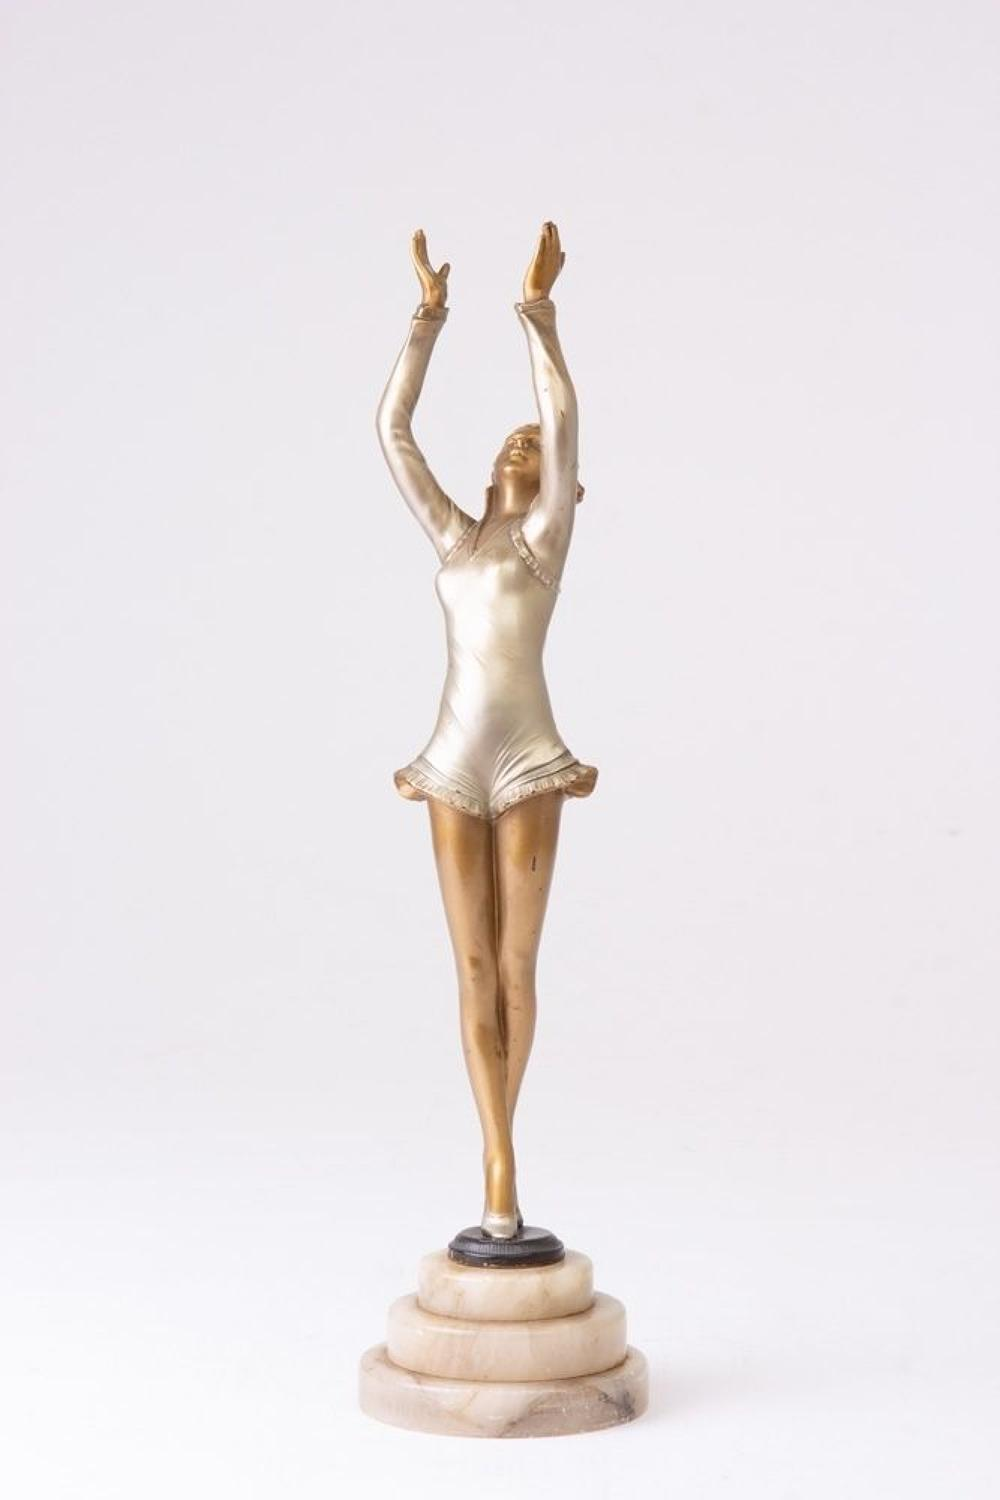 Art Deco Lady's Figure by Lorenzyl c.1920s